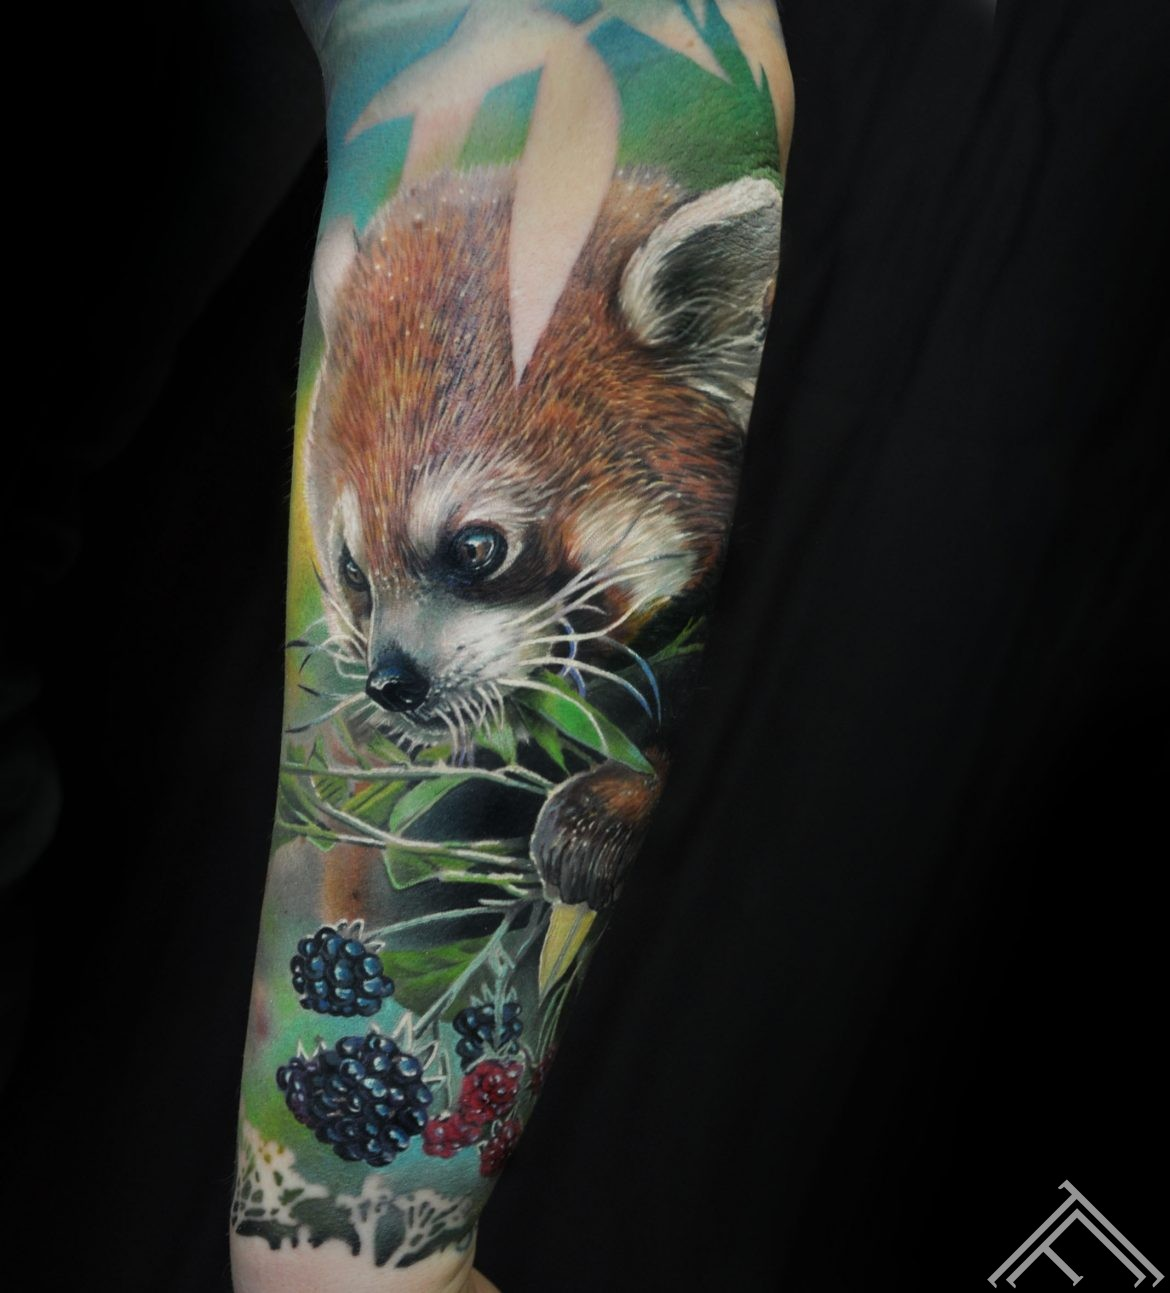 redpanda-panda-berries-ogas-tetovejums-tattoo-tattoofrequency-riga-art-marispavlo